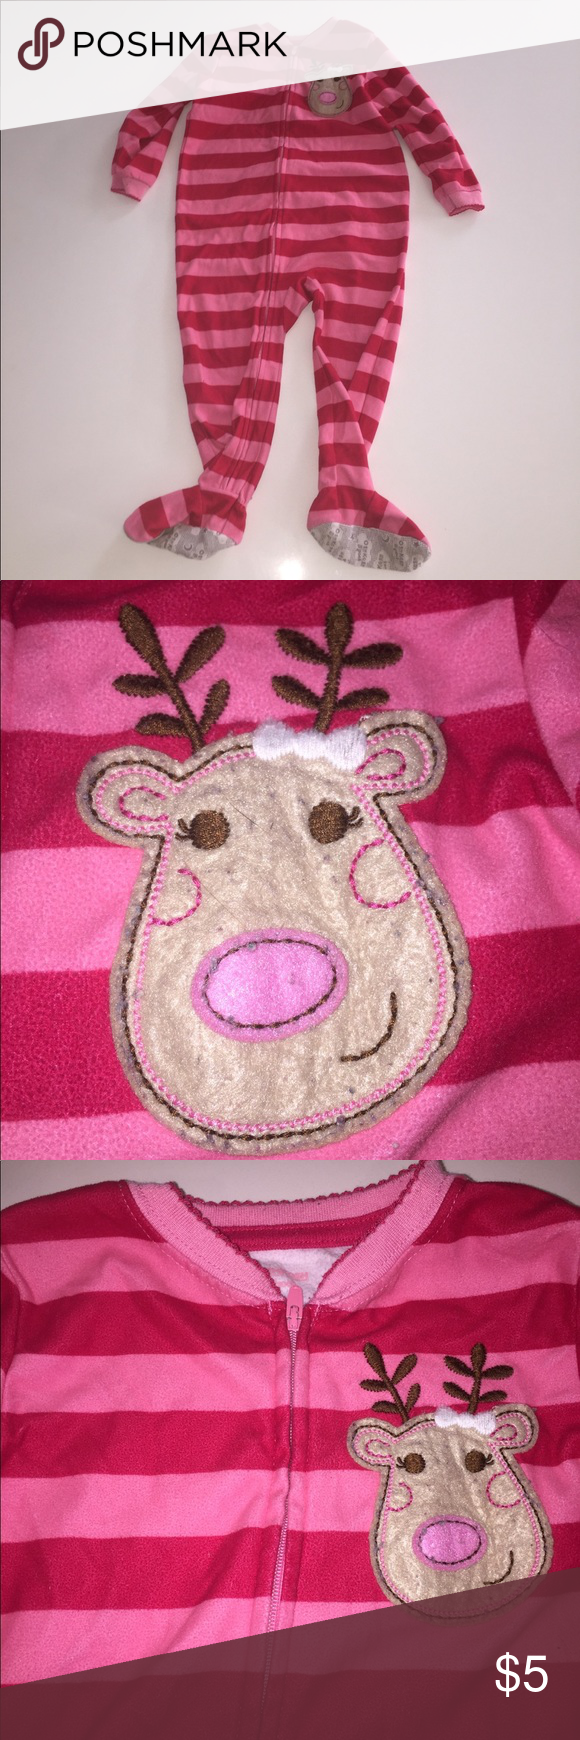 3dab2c0e8 Oshkosh b gosh reindeer striped footed pajamas 2t These have been ...